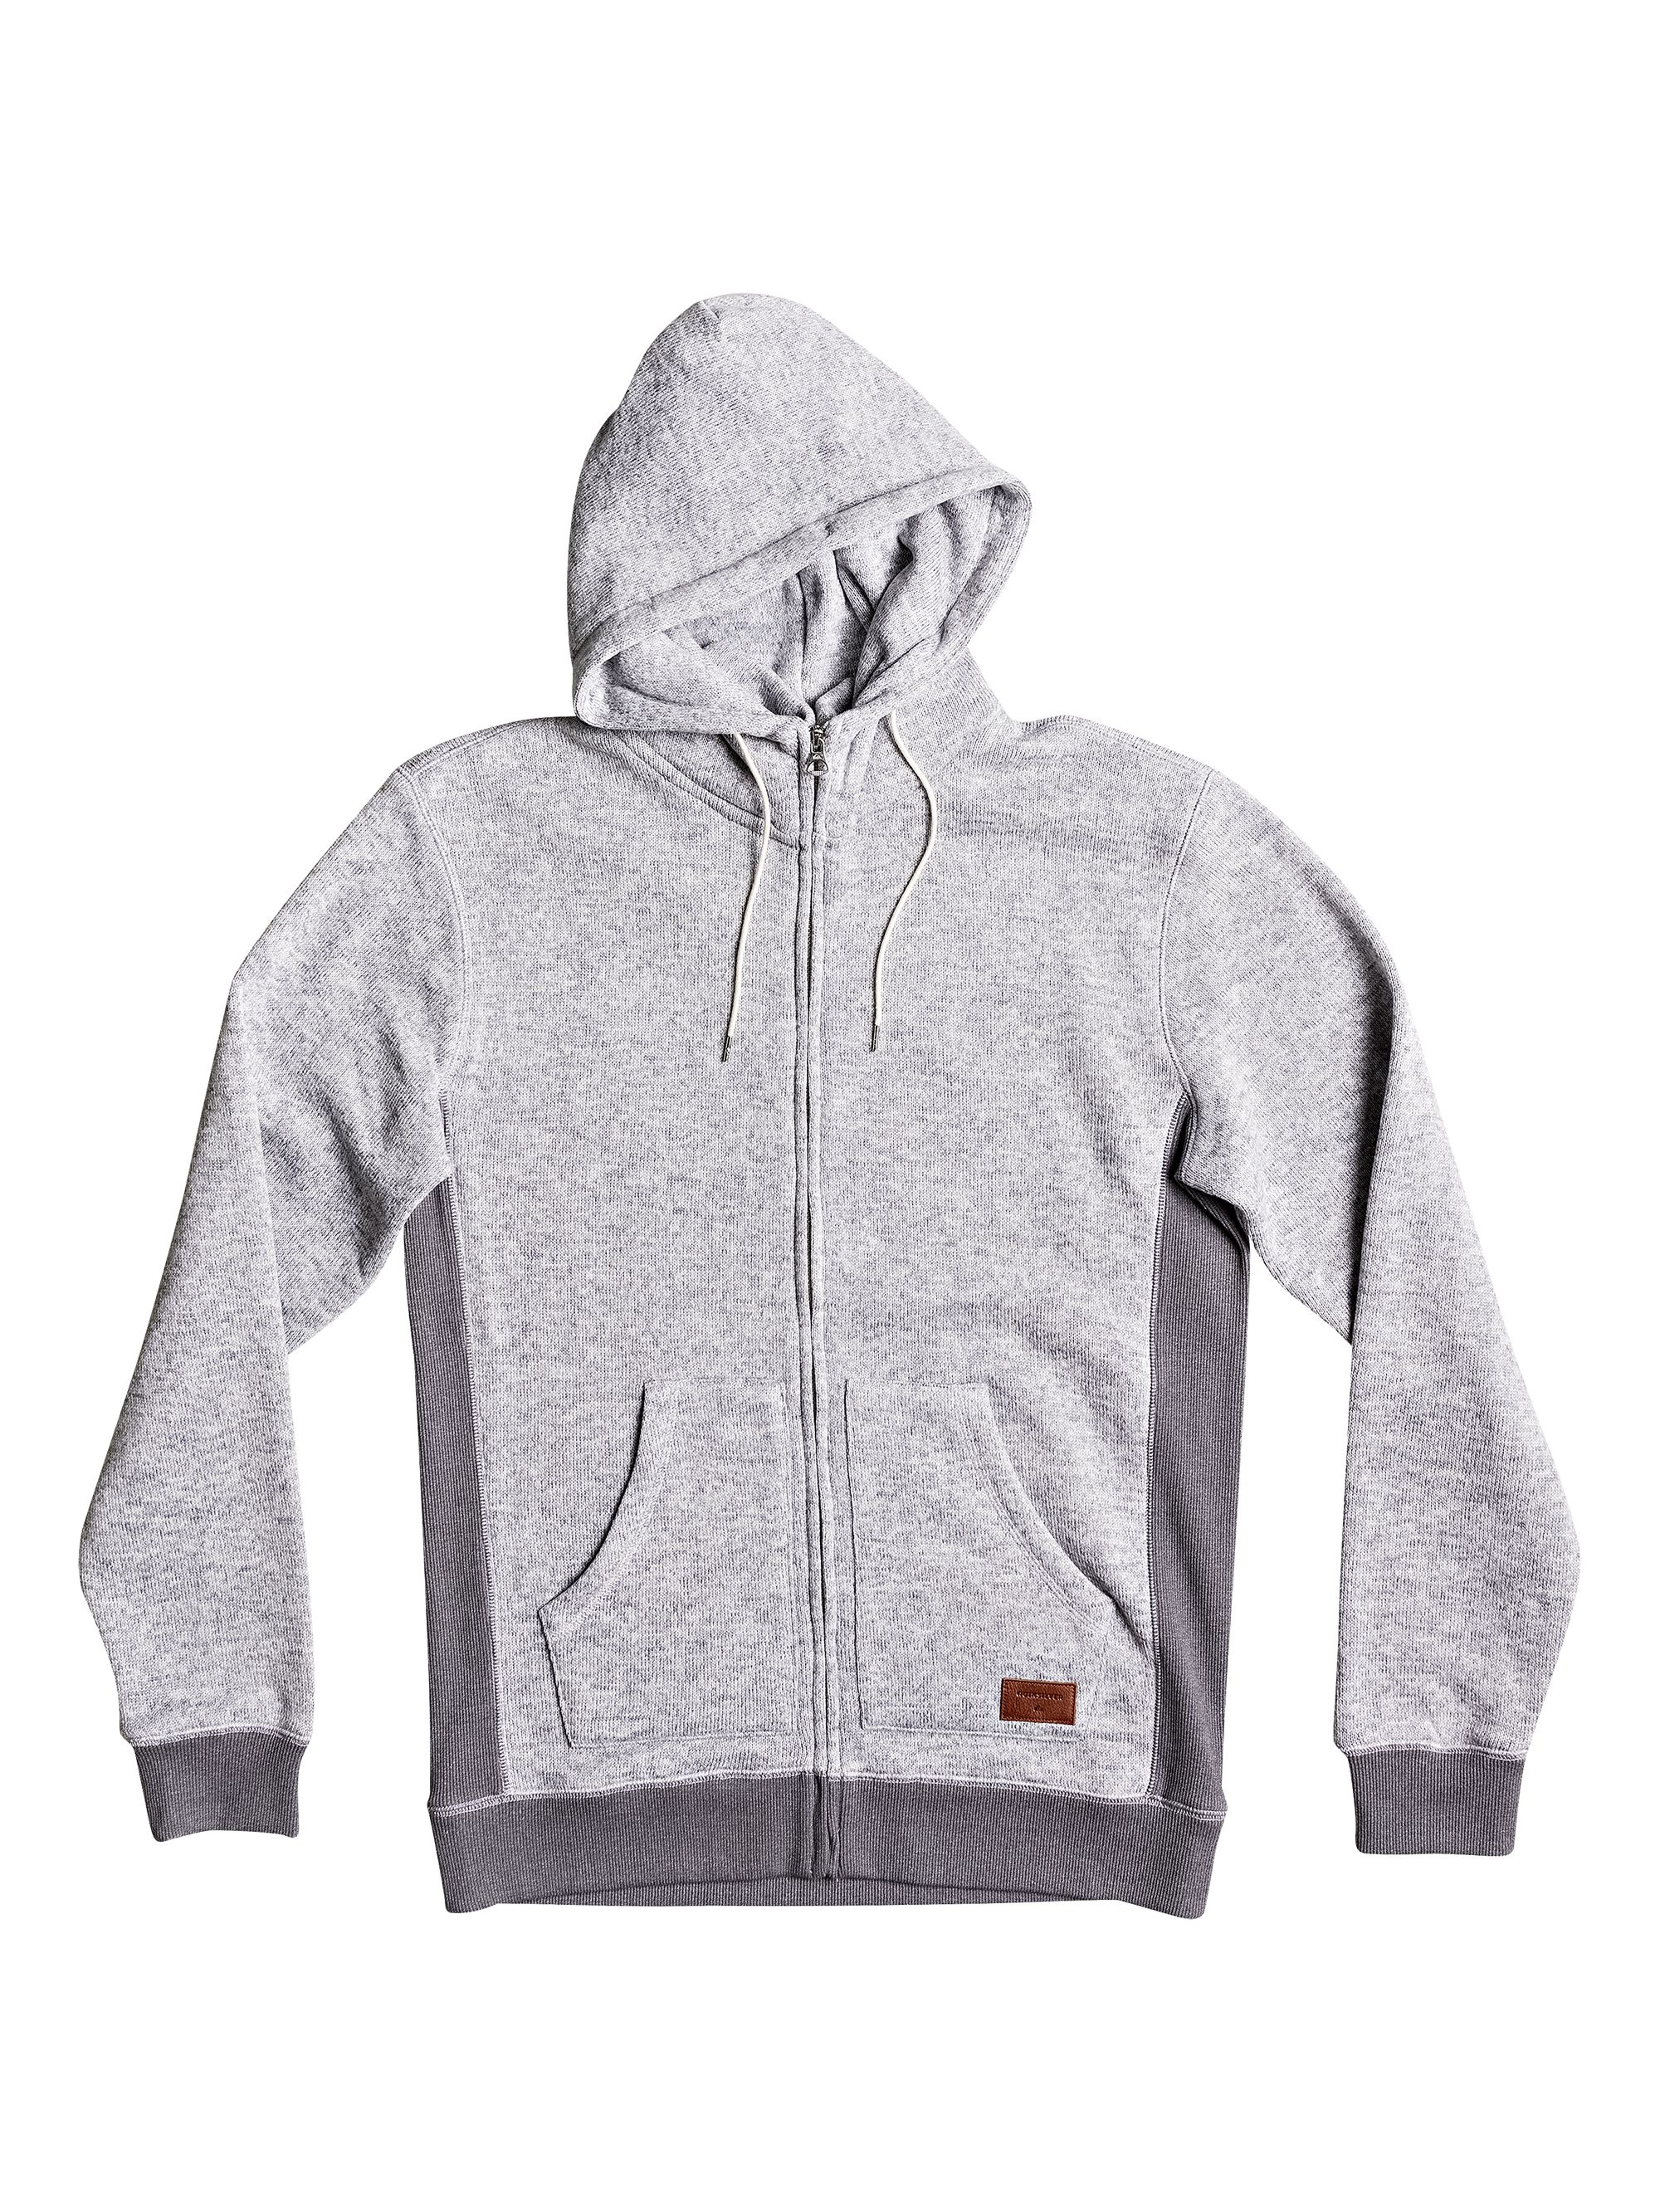 Men's Quiksilver Quiksilver Keller Zip-Up Fleece Hoodie, Grey